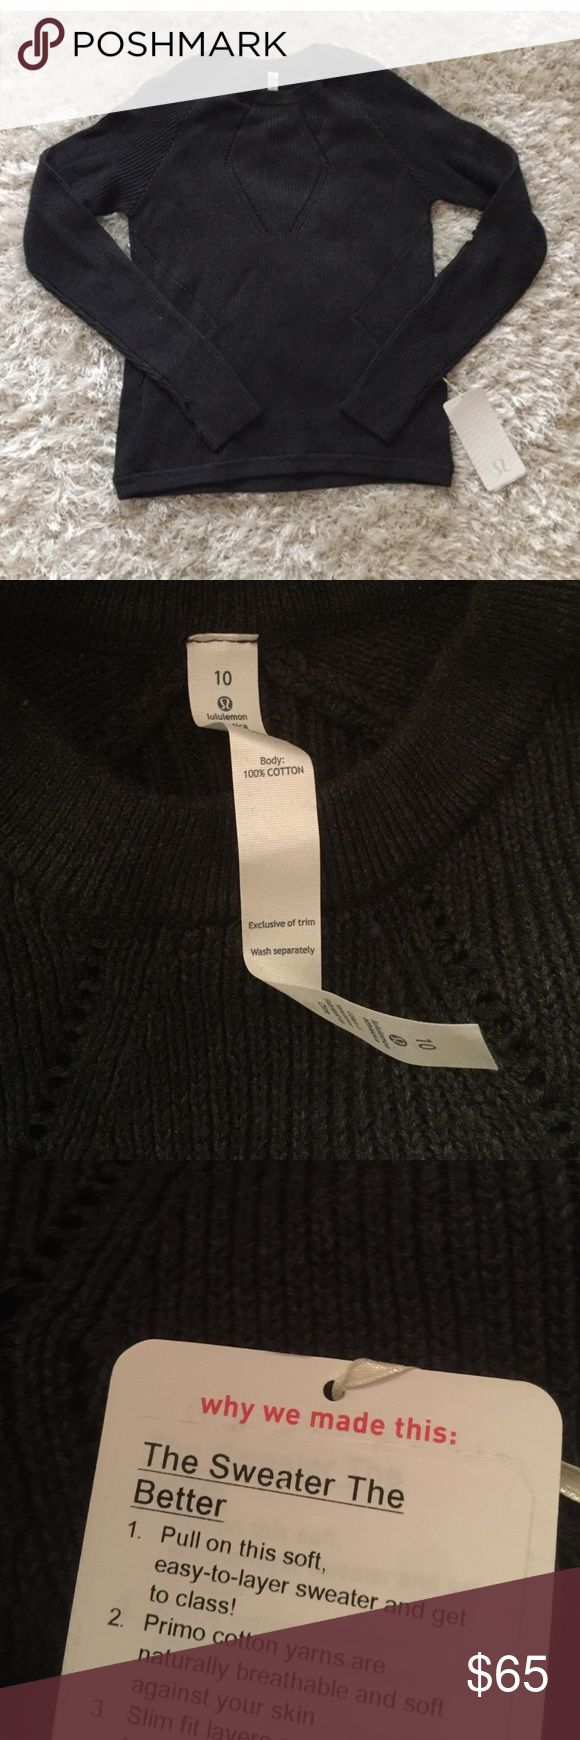 NWT lululemon sweater size 10 New with tag. Size 10. Dark grey color. The last pic is a model pic wearing same style of sweater but different color. lululemon athletica Sweaters Crew & Scoop Necks